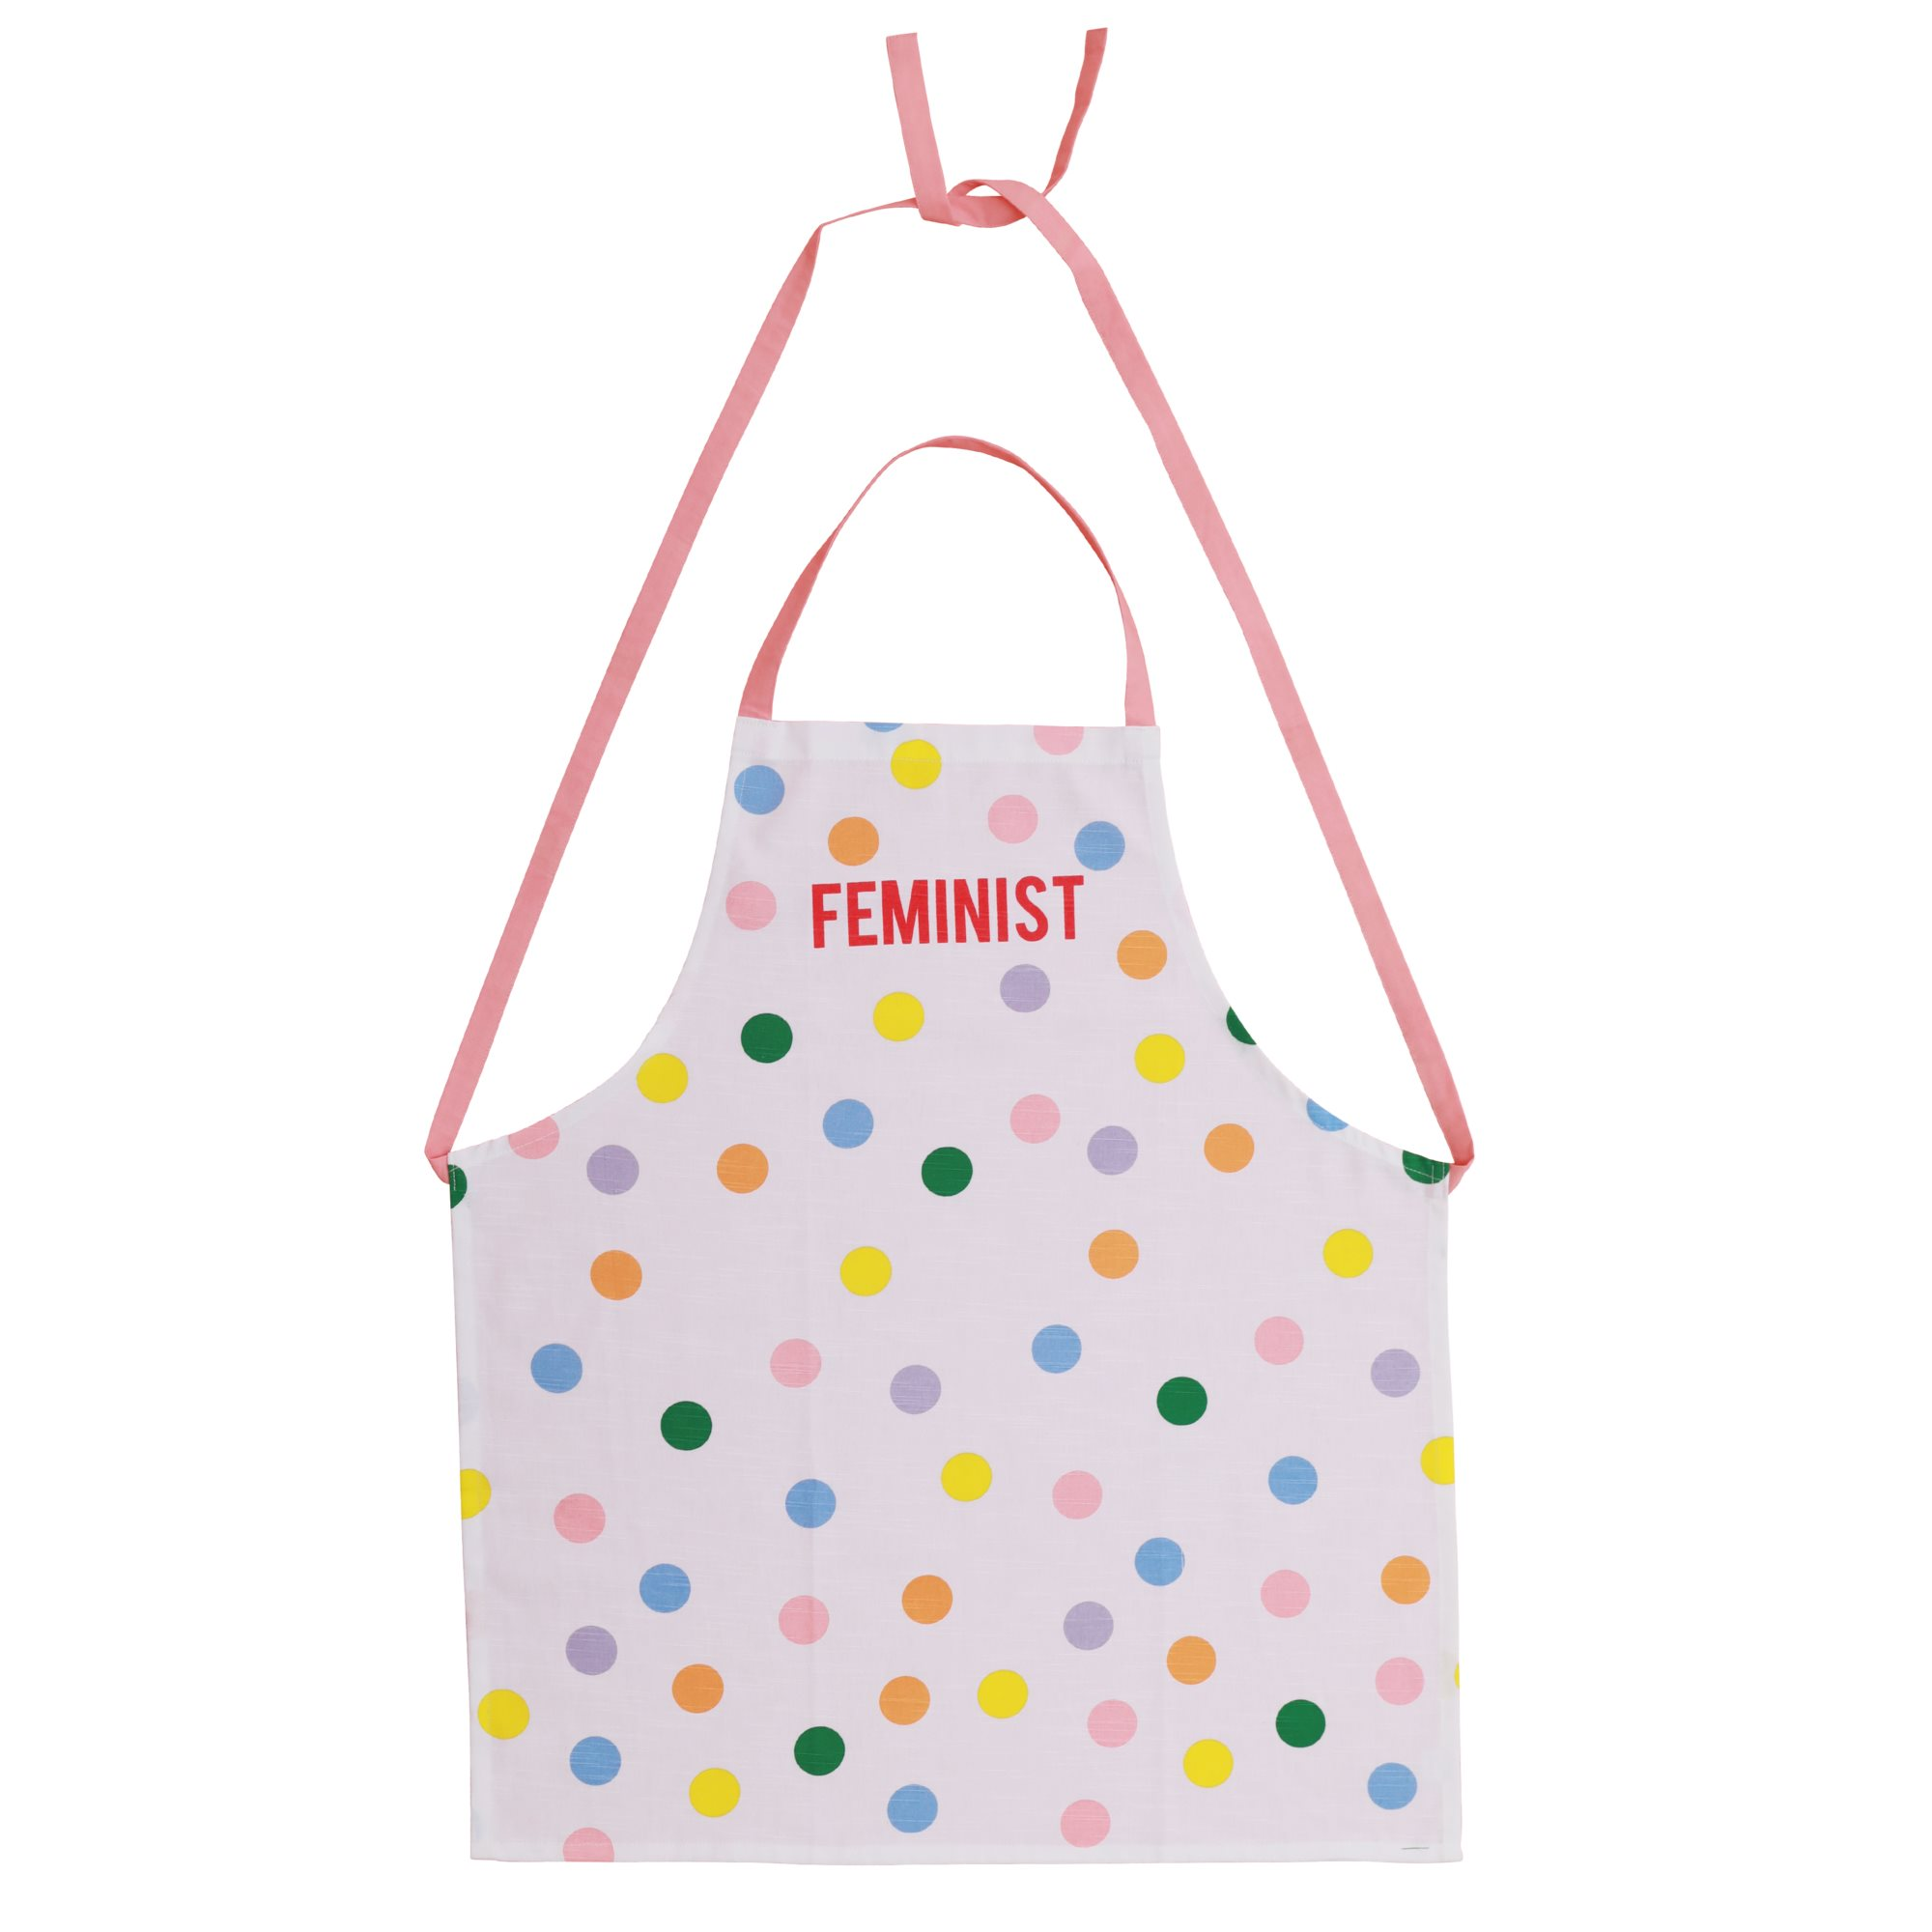 Rice - Cotton Apron w. Dots and Feminist Print